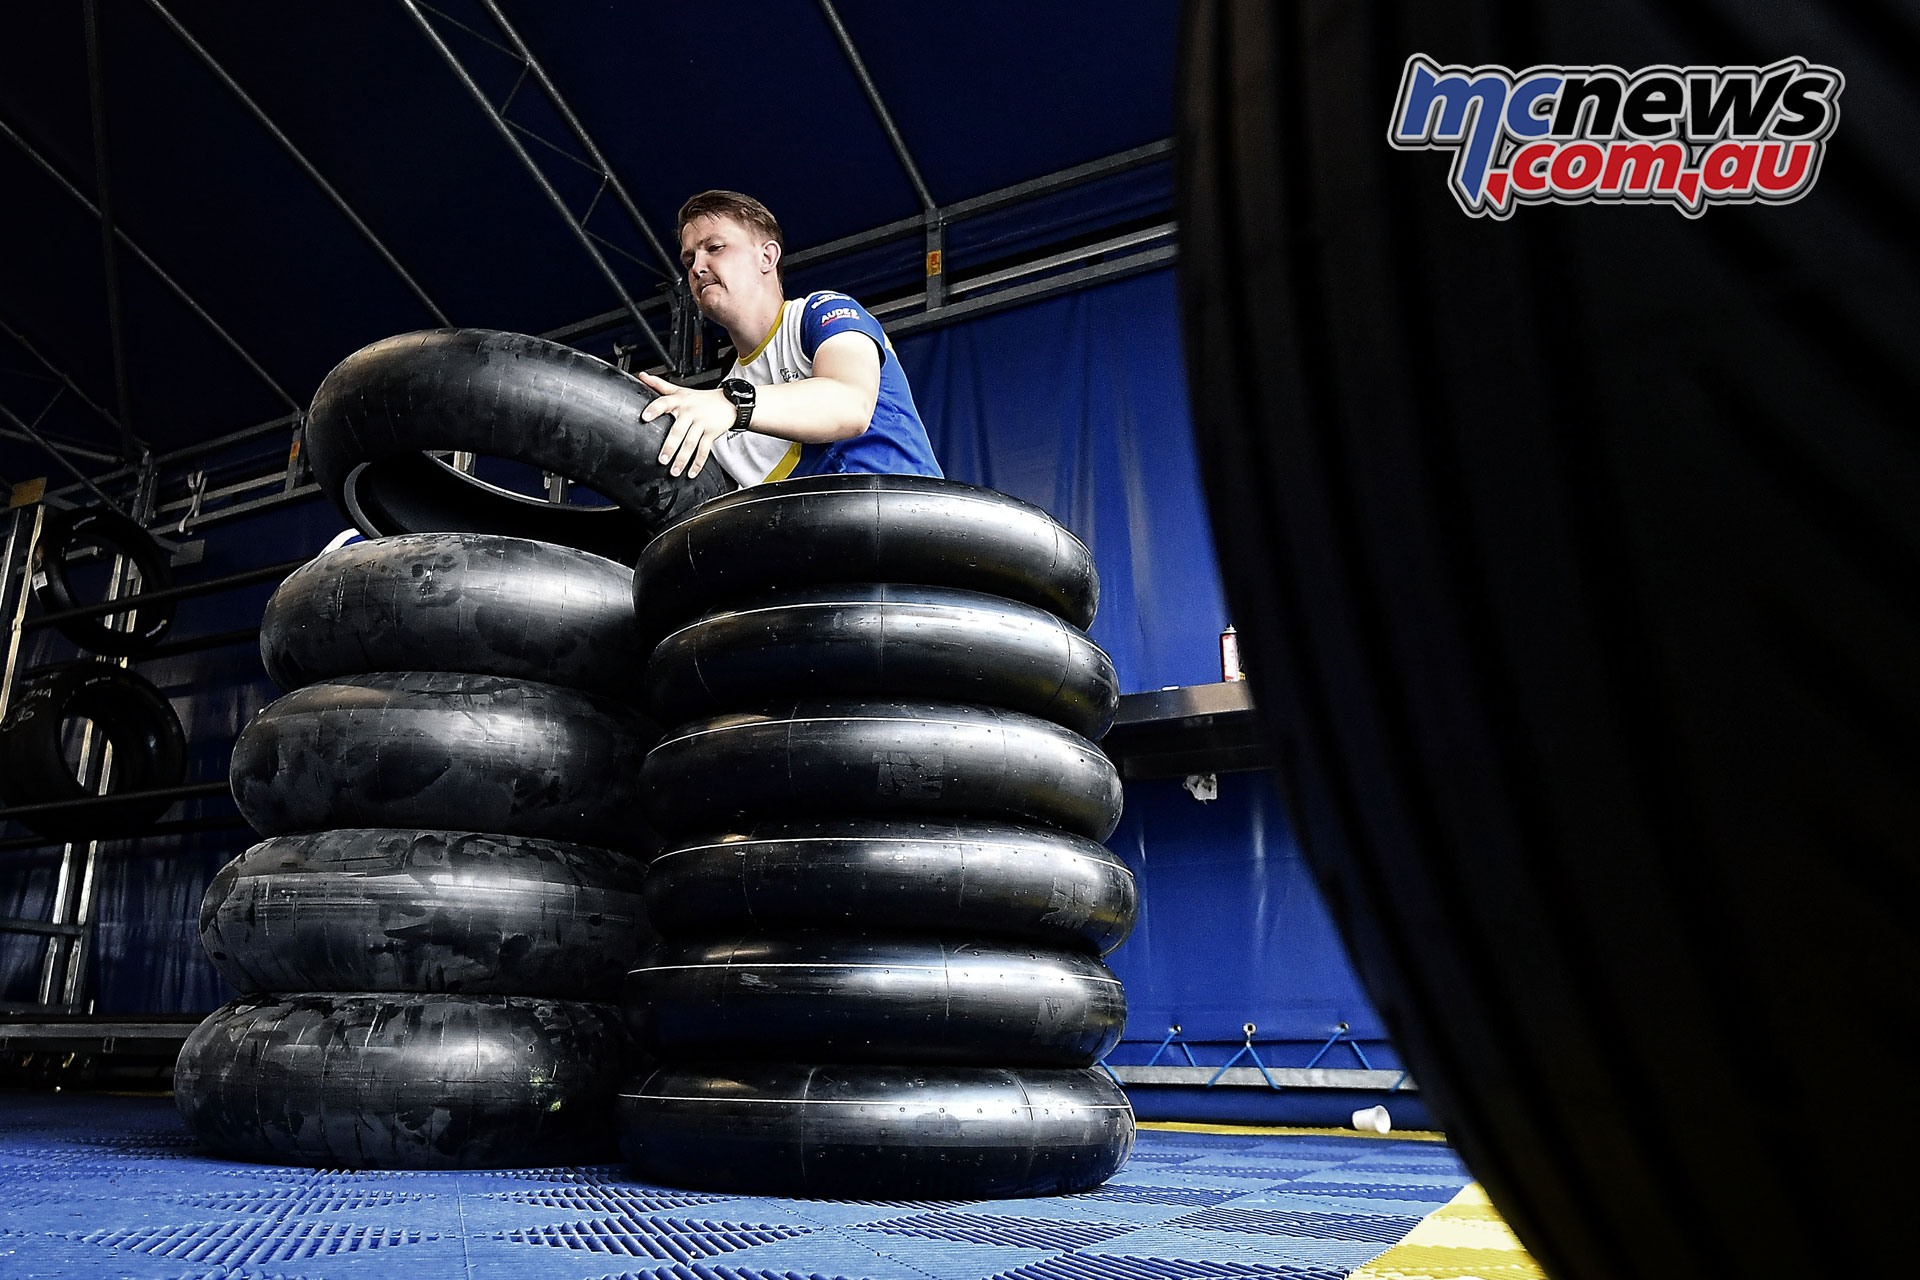 MotoGP Rnd Mugello Preview michelin